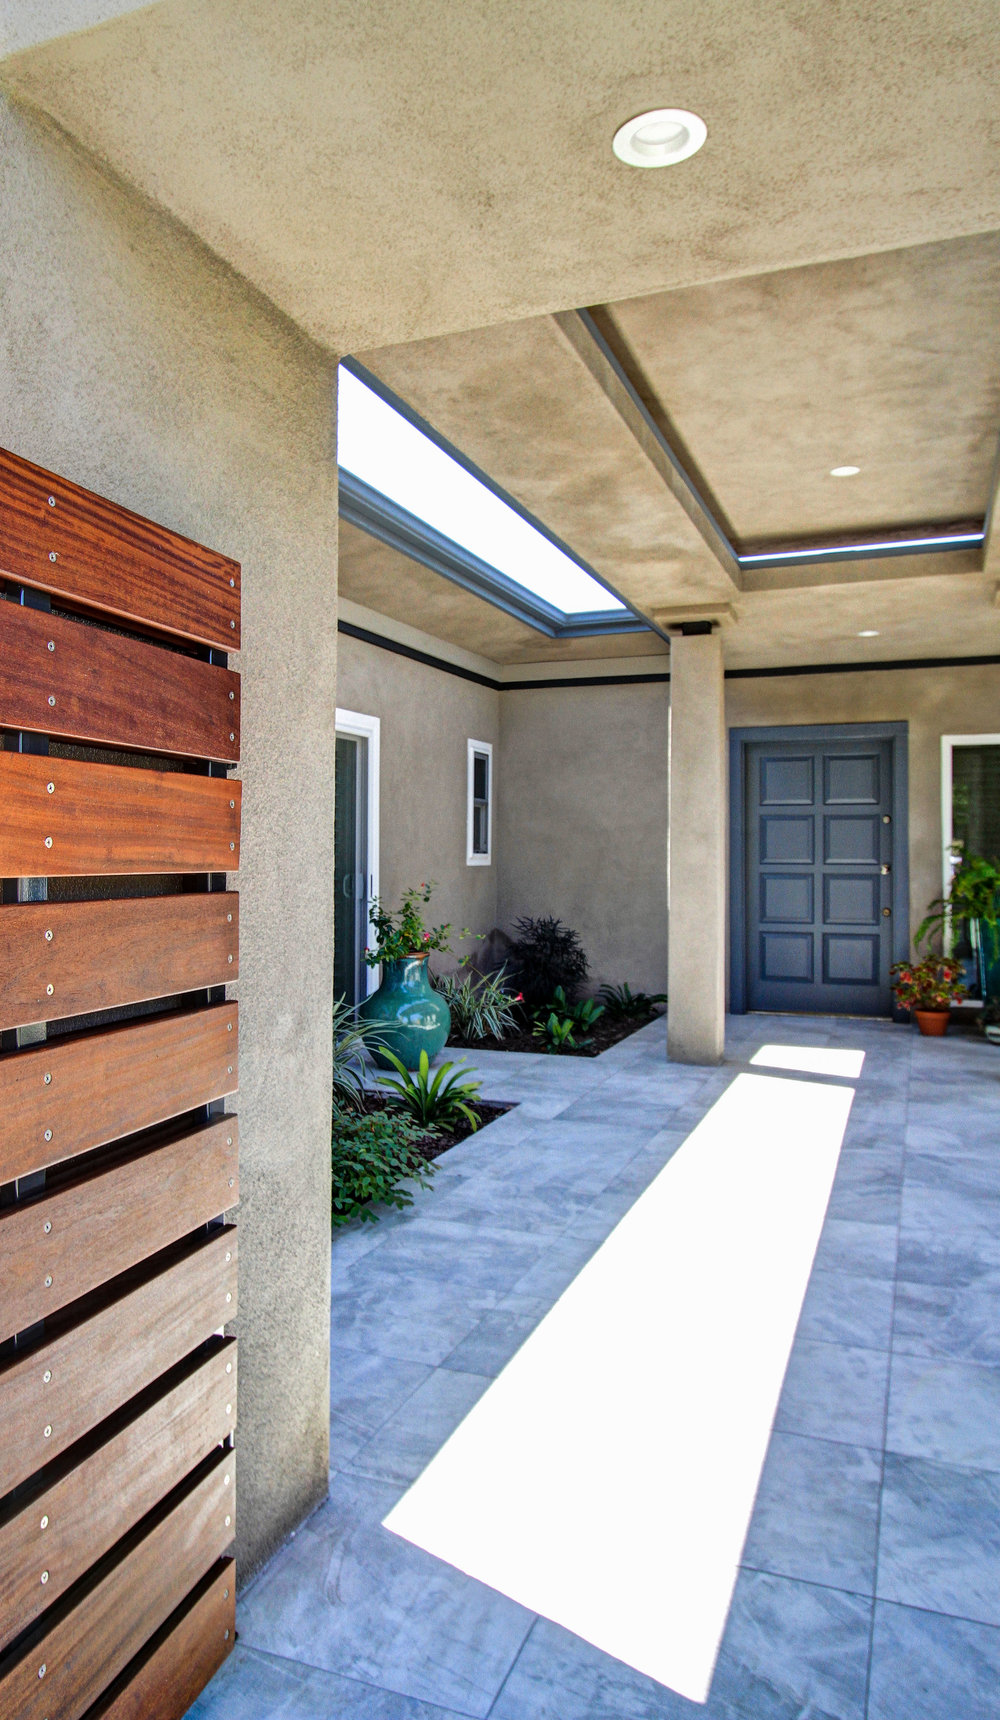 - We discovered Wendy Wilson through Angie's List and hired her to remodel and update several outdoor areas of our 40+ year old home, including front atrium, rear patio and spa area. She listened to our ideas, provided us with information to make informed decisions, and designed detailed plans.She is gifted with excellent interpersonal skills, a trait not always possessed by people in her field. Wendy was professional, punctual, thorough, and courteous. Her assistance through permit (HOA and city) and planning stages was invaluable. Wendy remained very responsive with regard to scheduling aspects of the work and finalizing decisions about the details. Communication was excellent, and regular email updates were clear and explicit, even when everything was going according to plan.Wendy stressed that the goal was to create spaces that we would enjoy, even if that meant changing our minds about details. All of her work was exemplary, completed on time, and within the original contract amount. We highly recommend her services and would employ Wendy again.